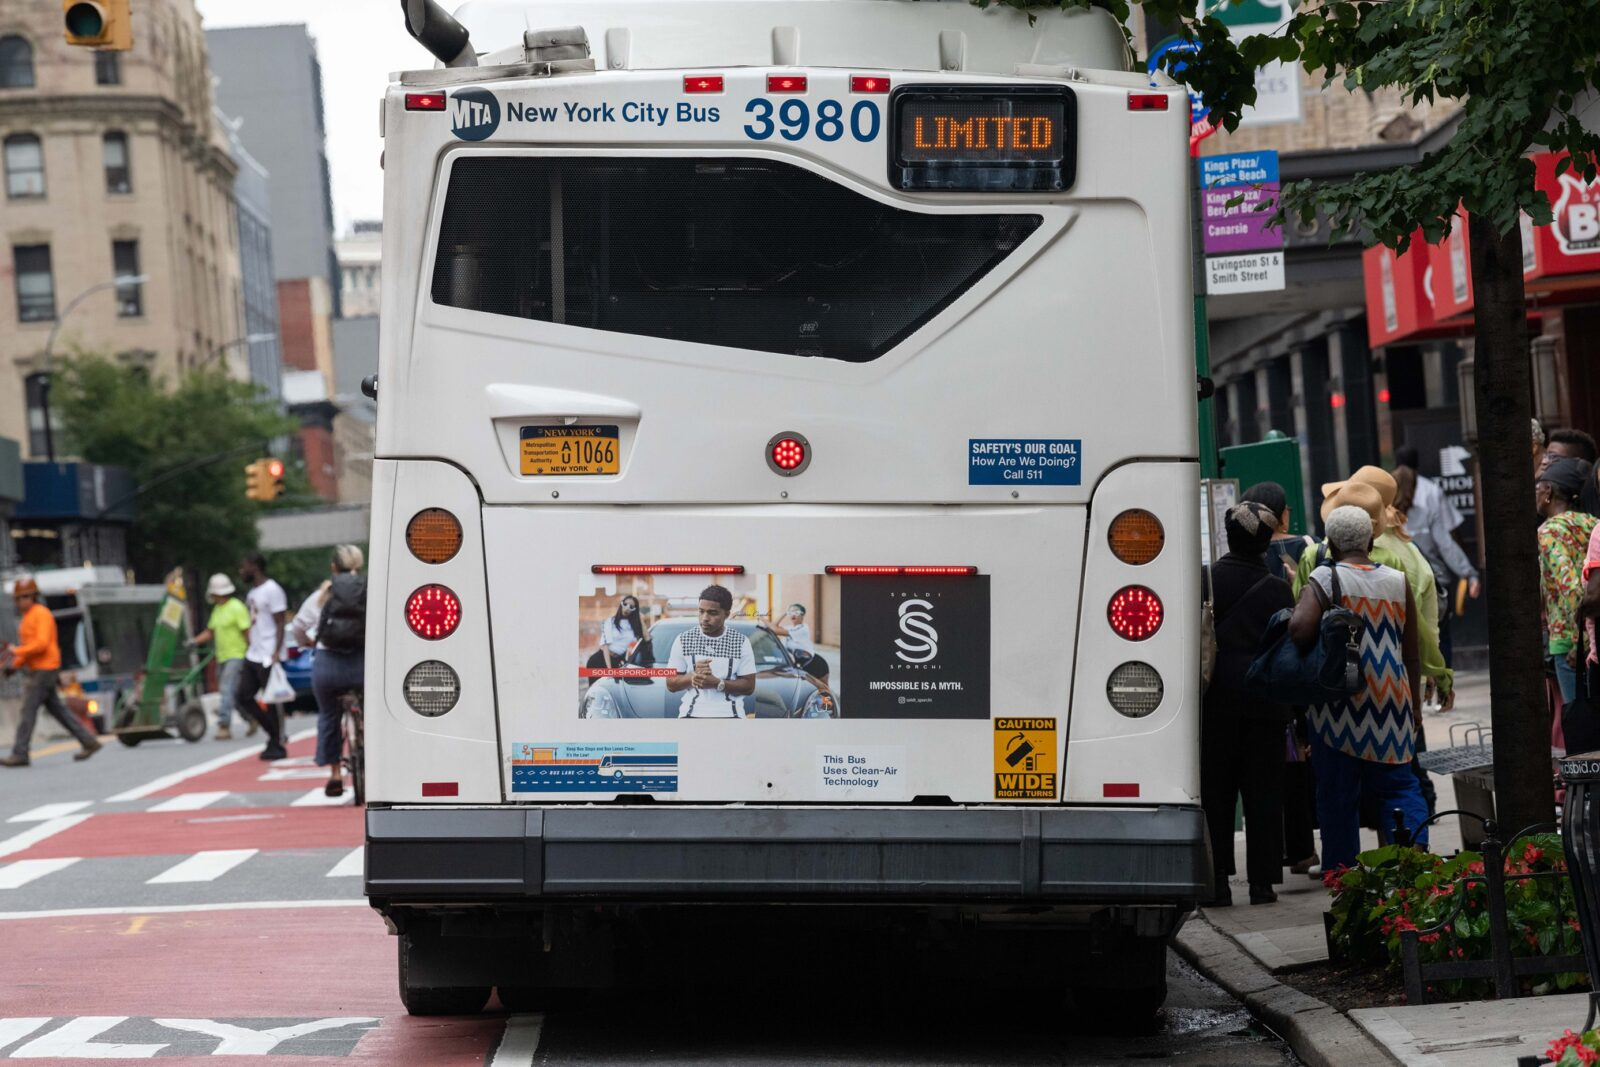 SOLDI-SPORCHI BUS TAIL ADVERTISING CAMPAIGN